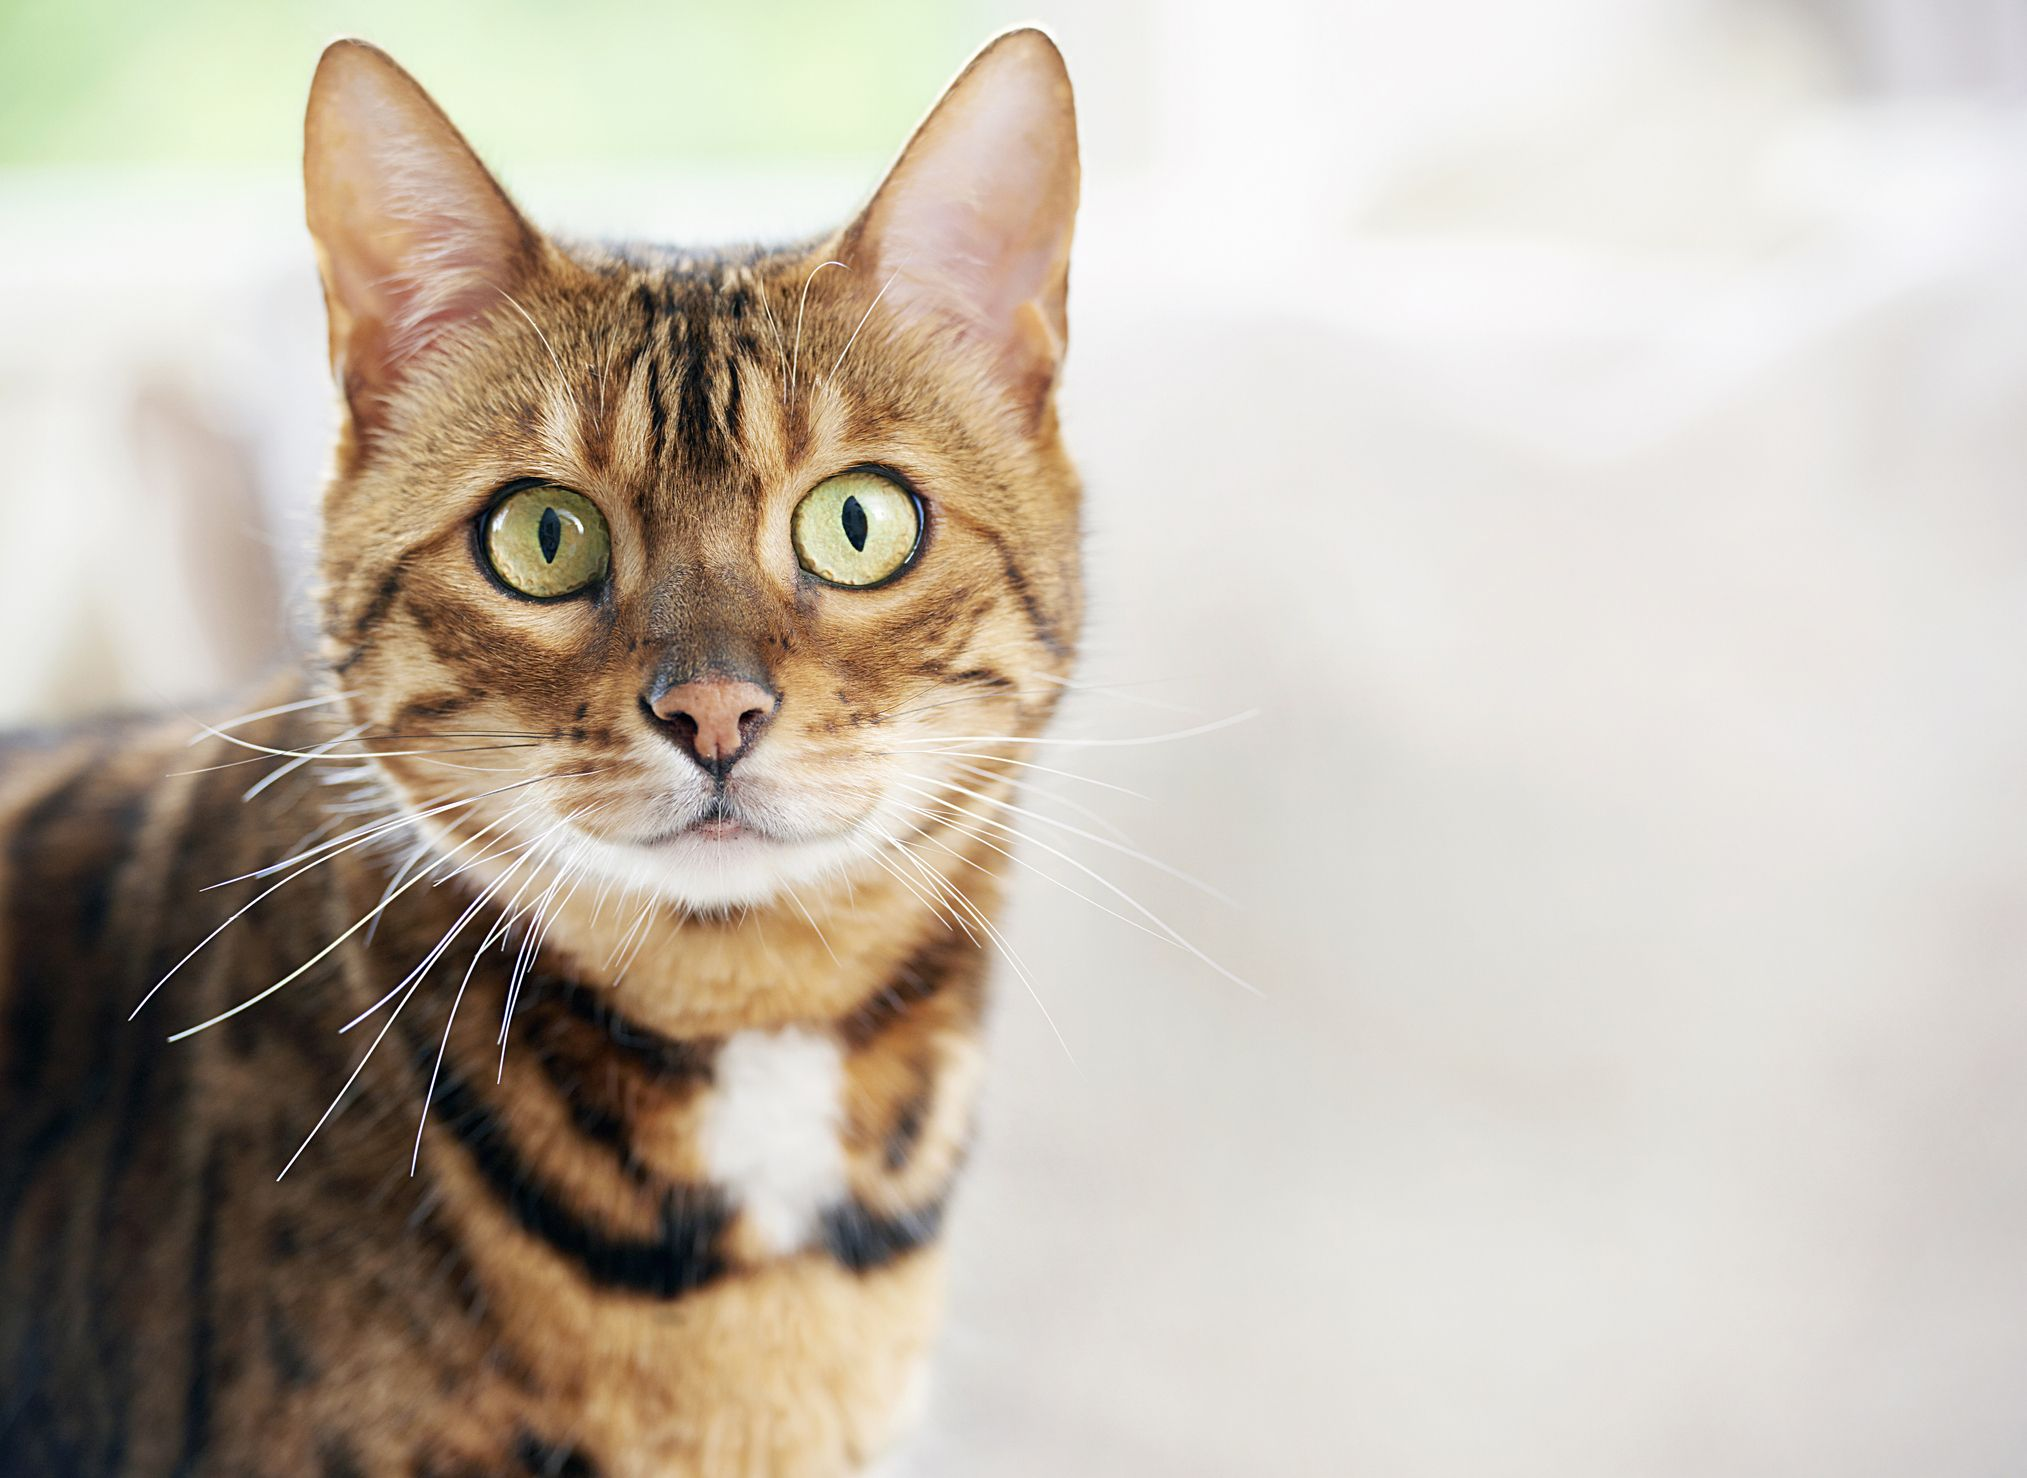 The 10 most popular female cat names of 2019 revealed